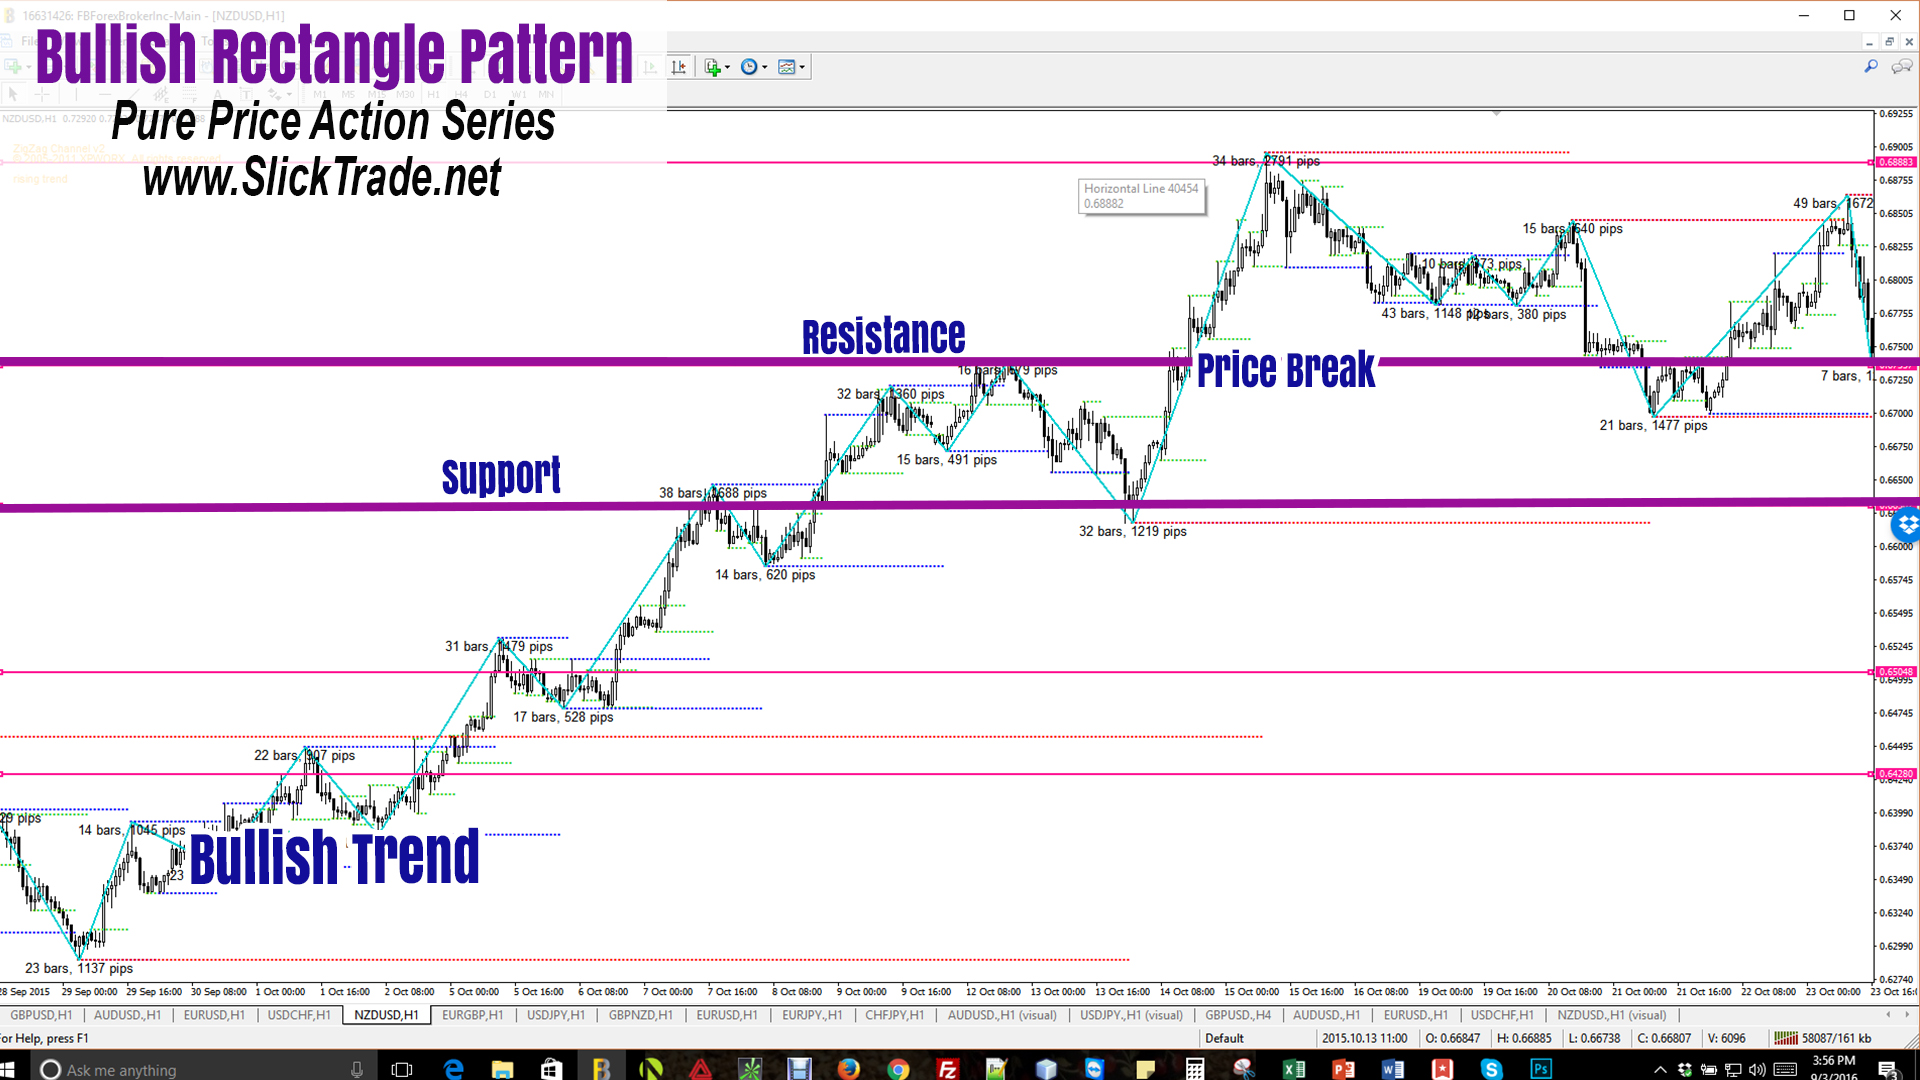 Forex Patterns Price Action Bullish Rectangle Pattern